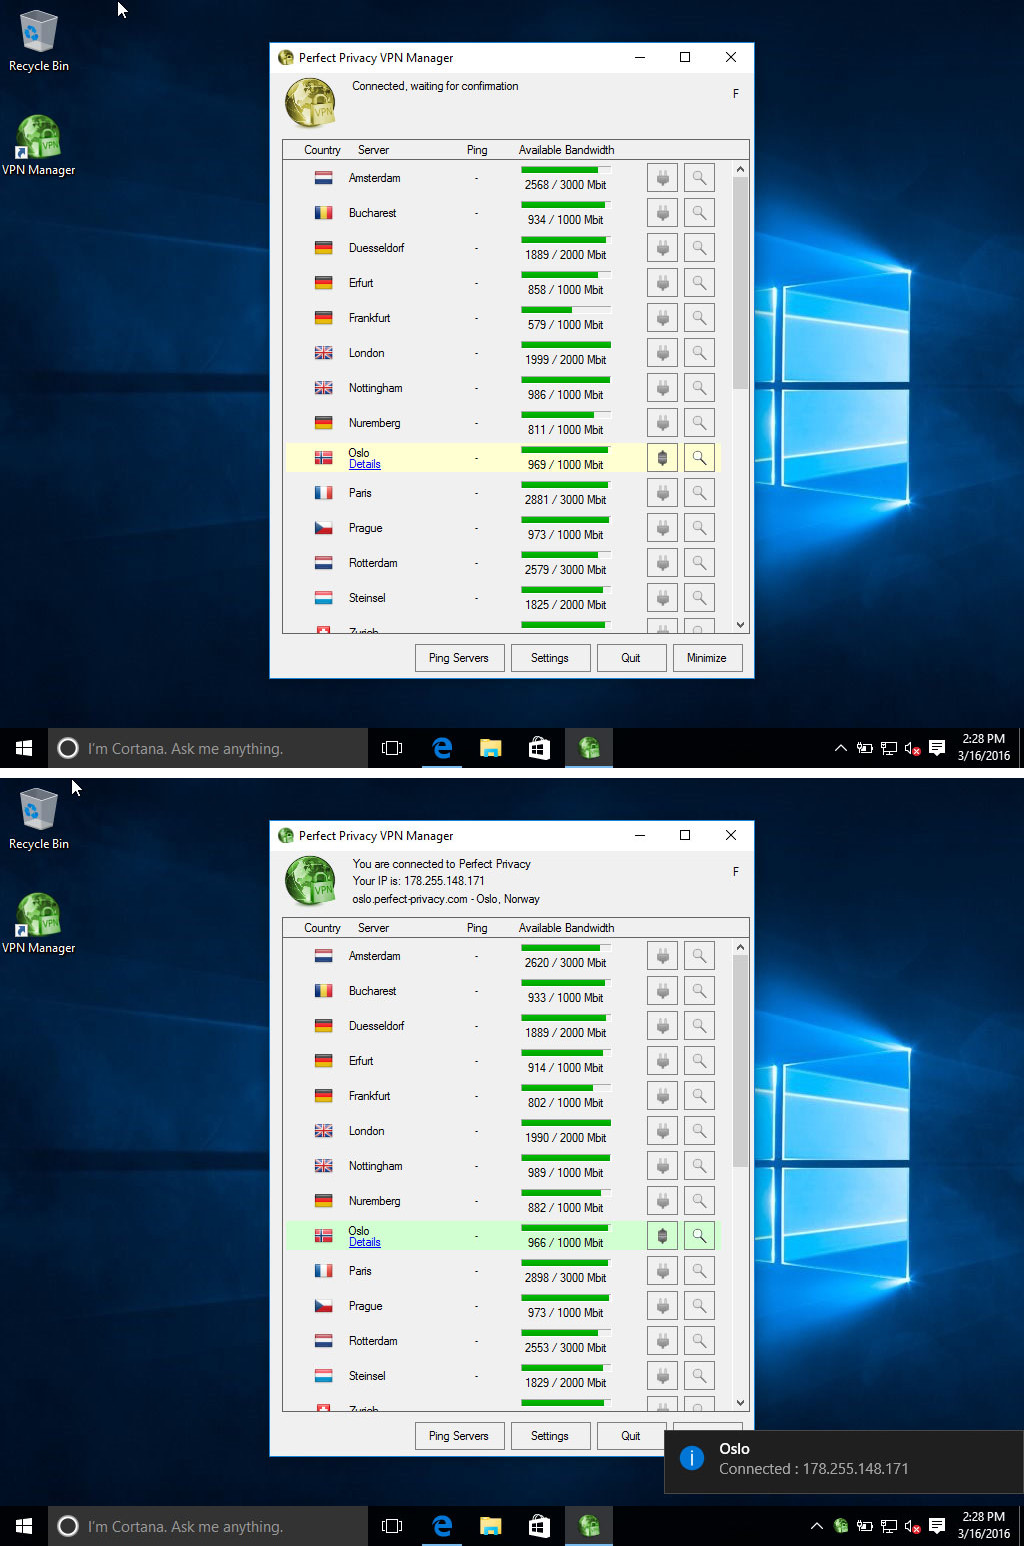 Screenshot Perfect Privacy VPN Manager: Waiting for connection. | Perfect Privacy VPN Manager Installation (Windows 10)